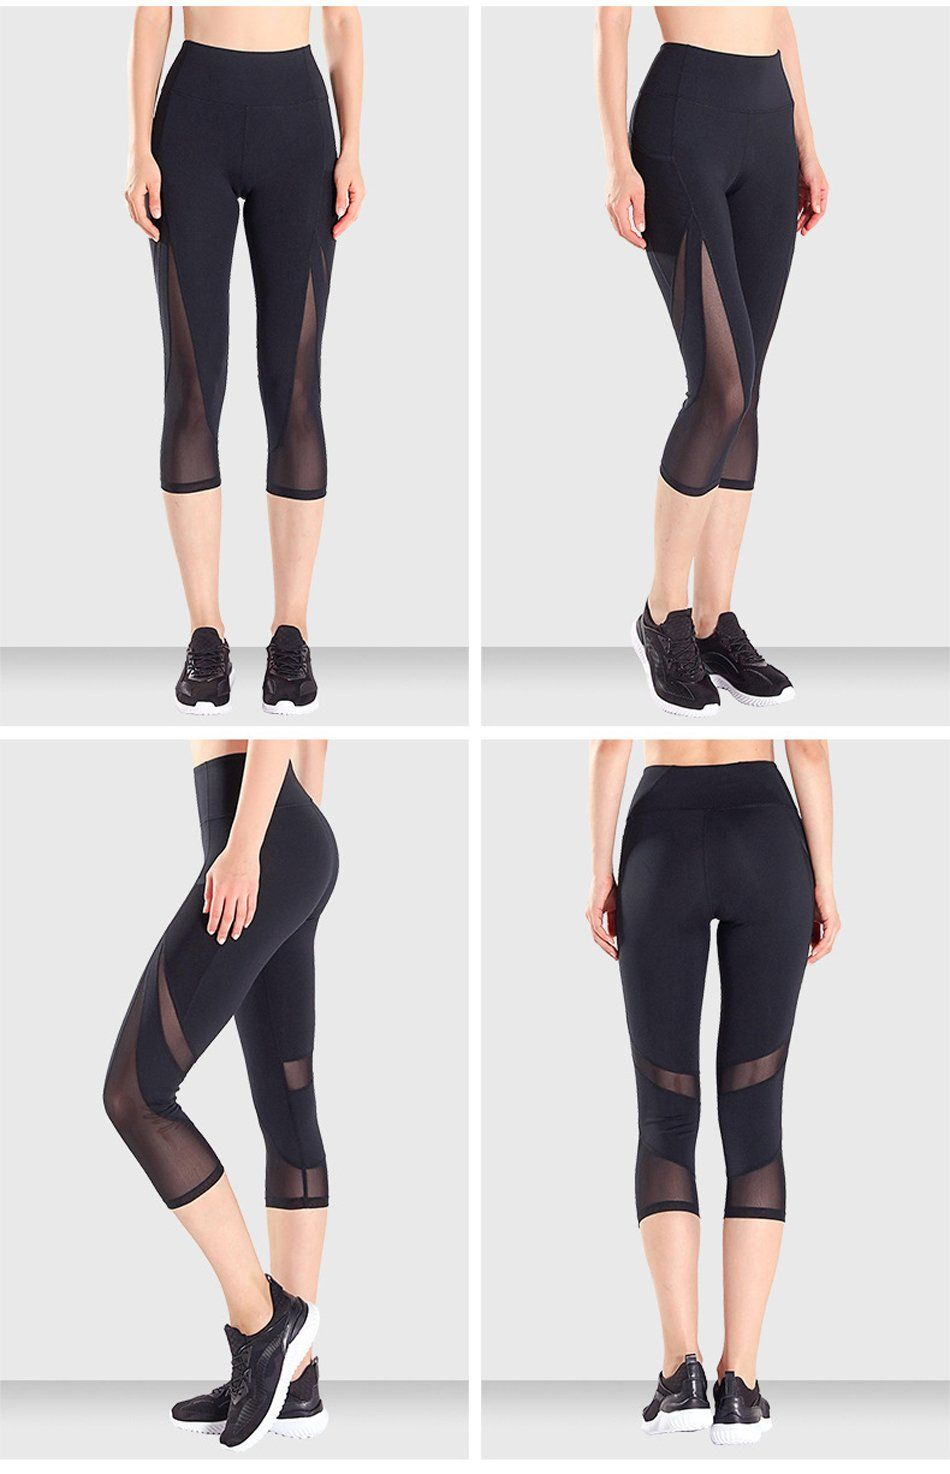 822772bbd627d Item Type: Full Length Sport Type: Yoga Gender: Women Model Number: High  Quality Sports Capris Material: Spandex+Polyester Fit: Fits smaller than  usual.